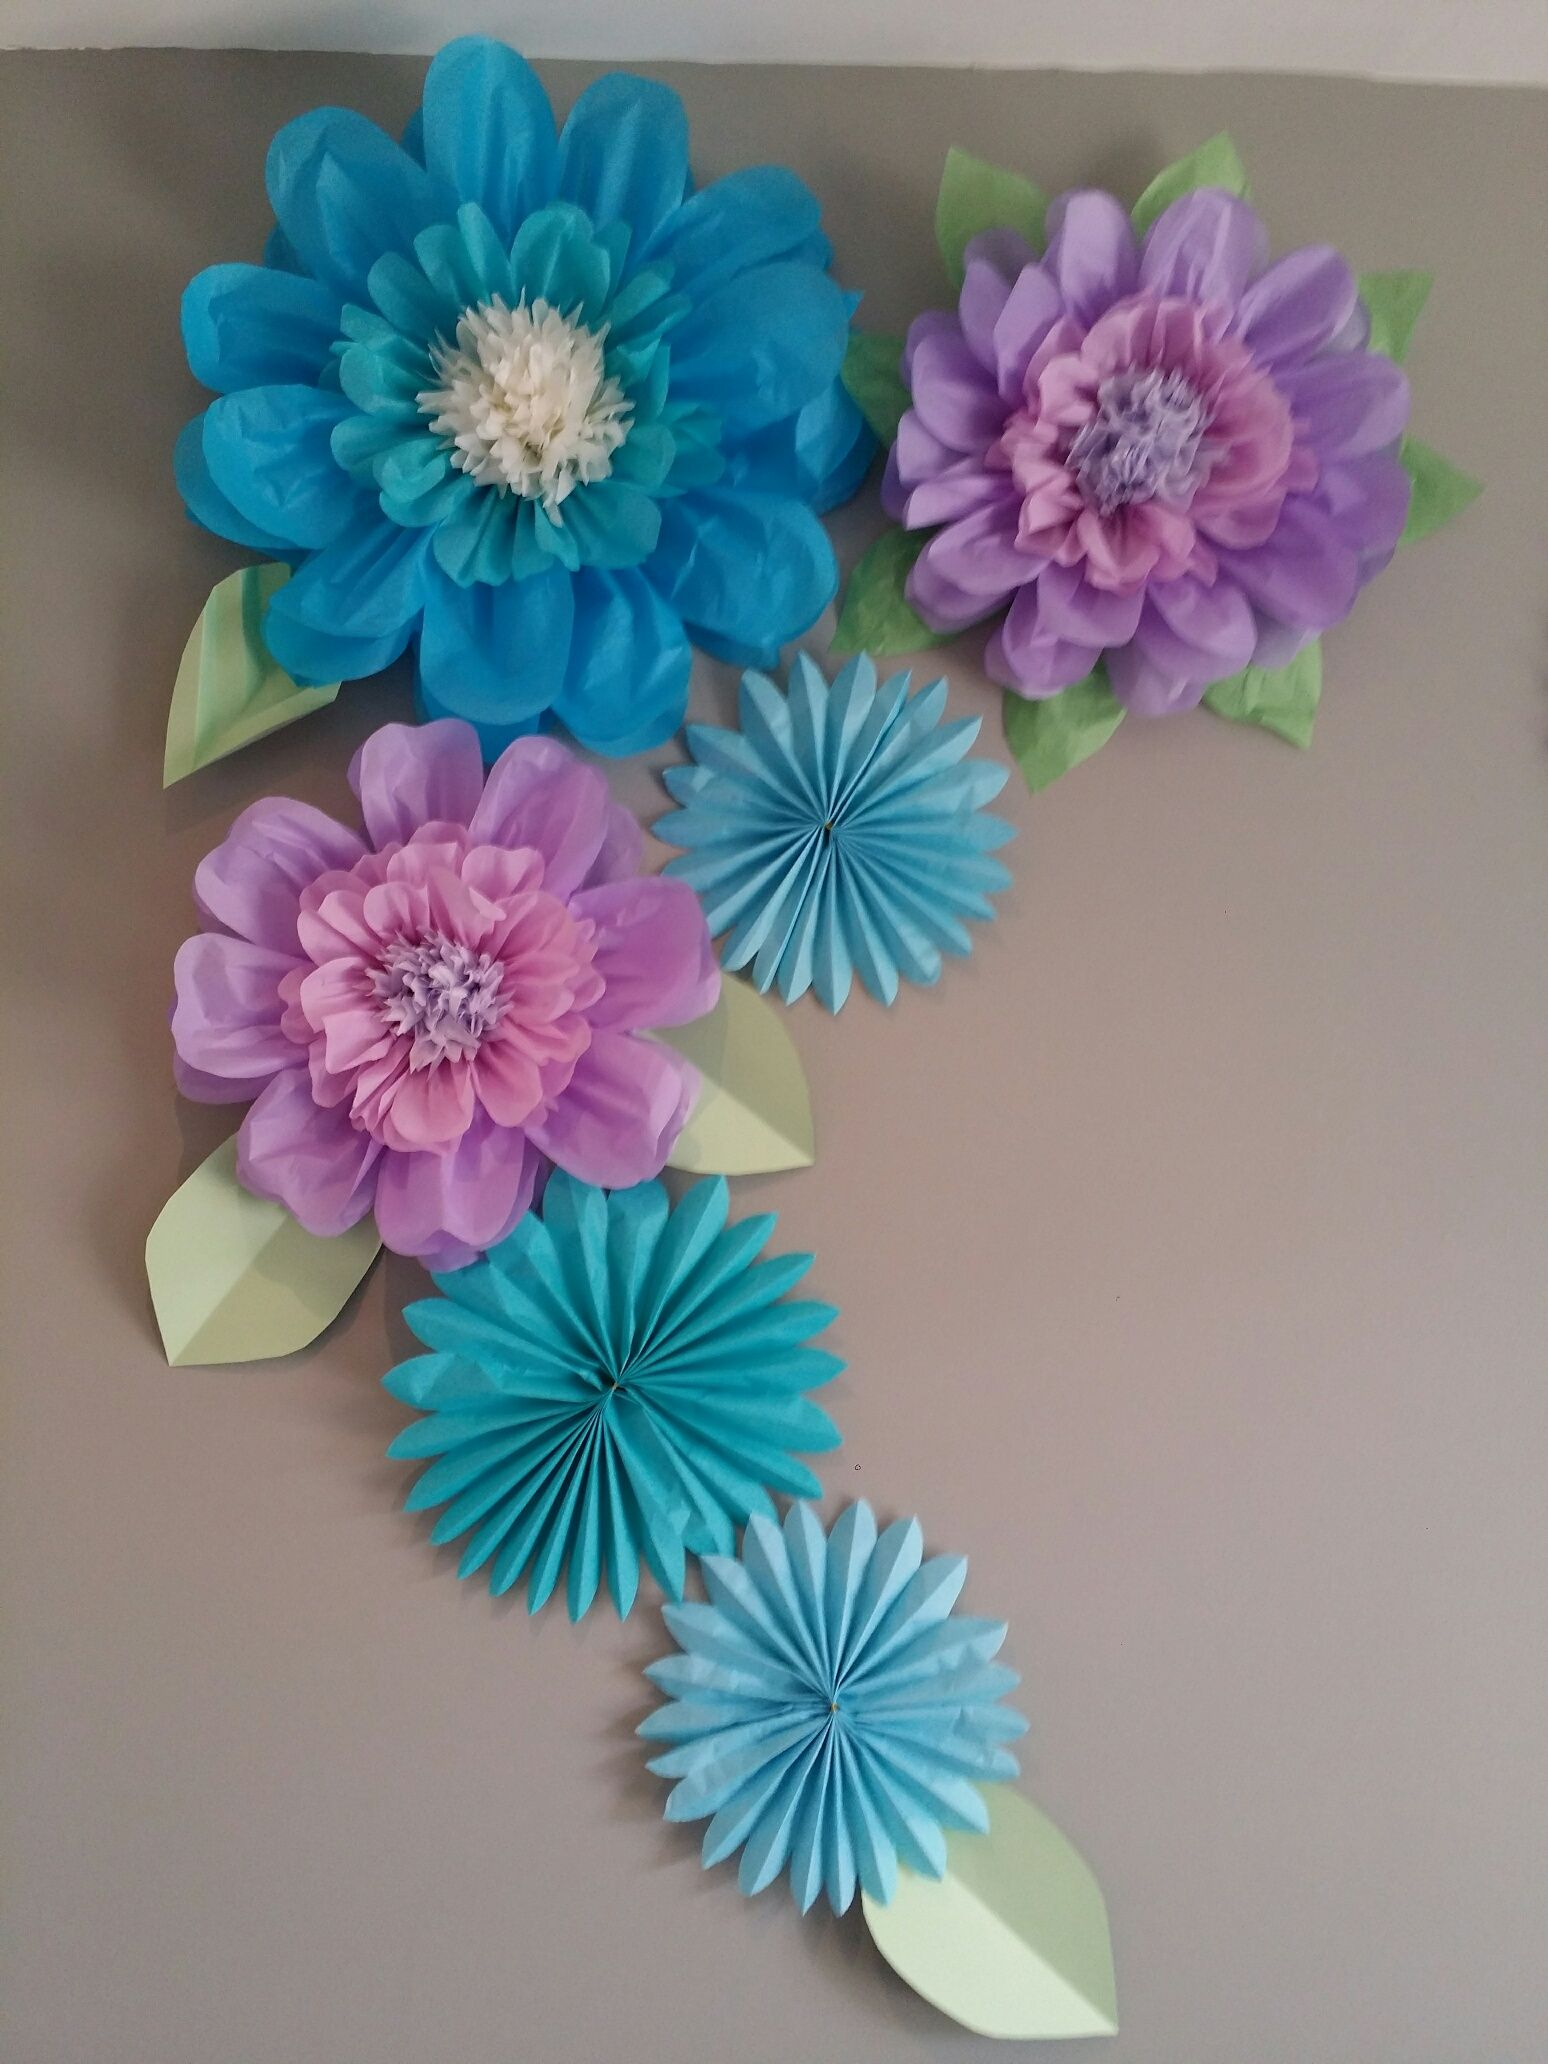 3 Feet By 25 Feet Paper Flowers And Pinwheels Backdrop